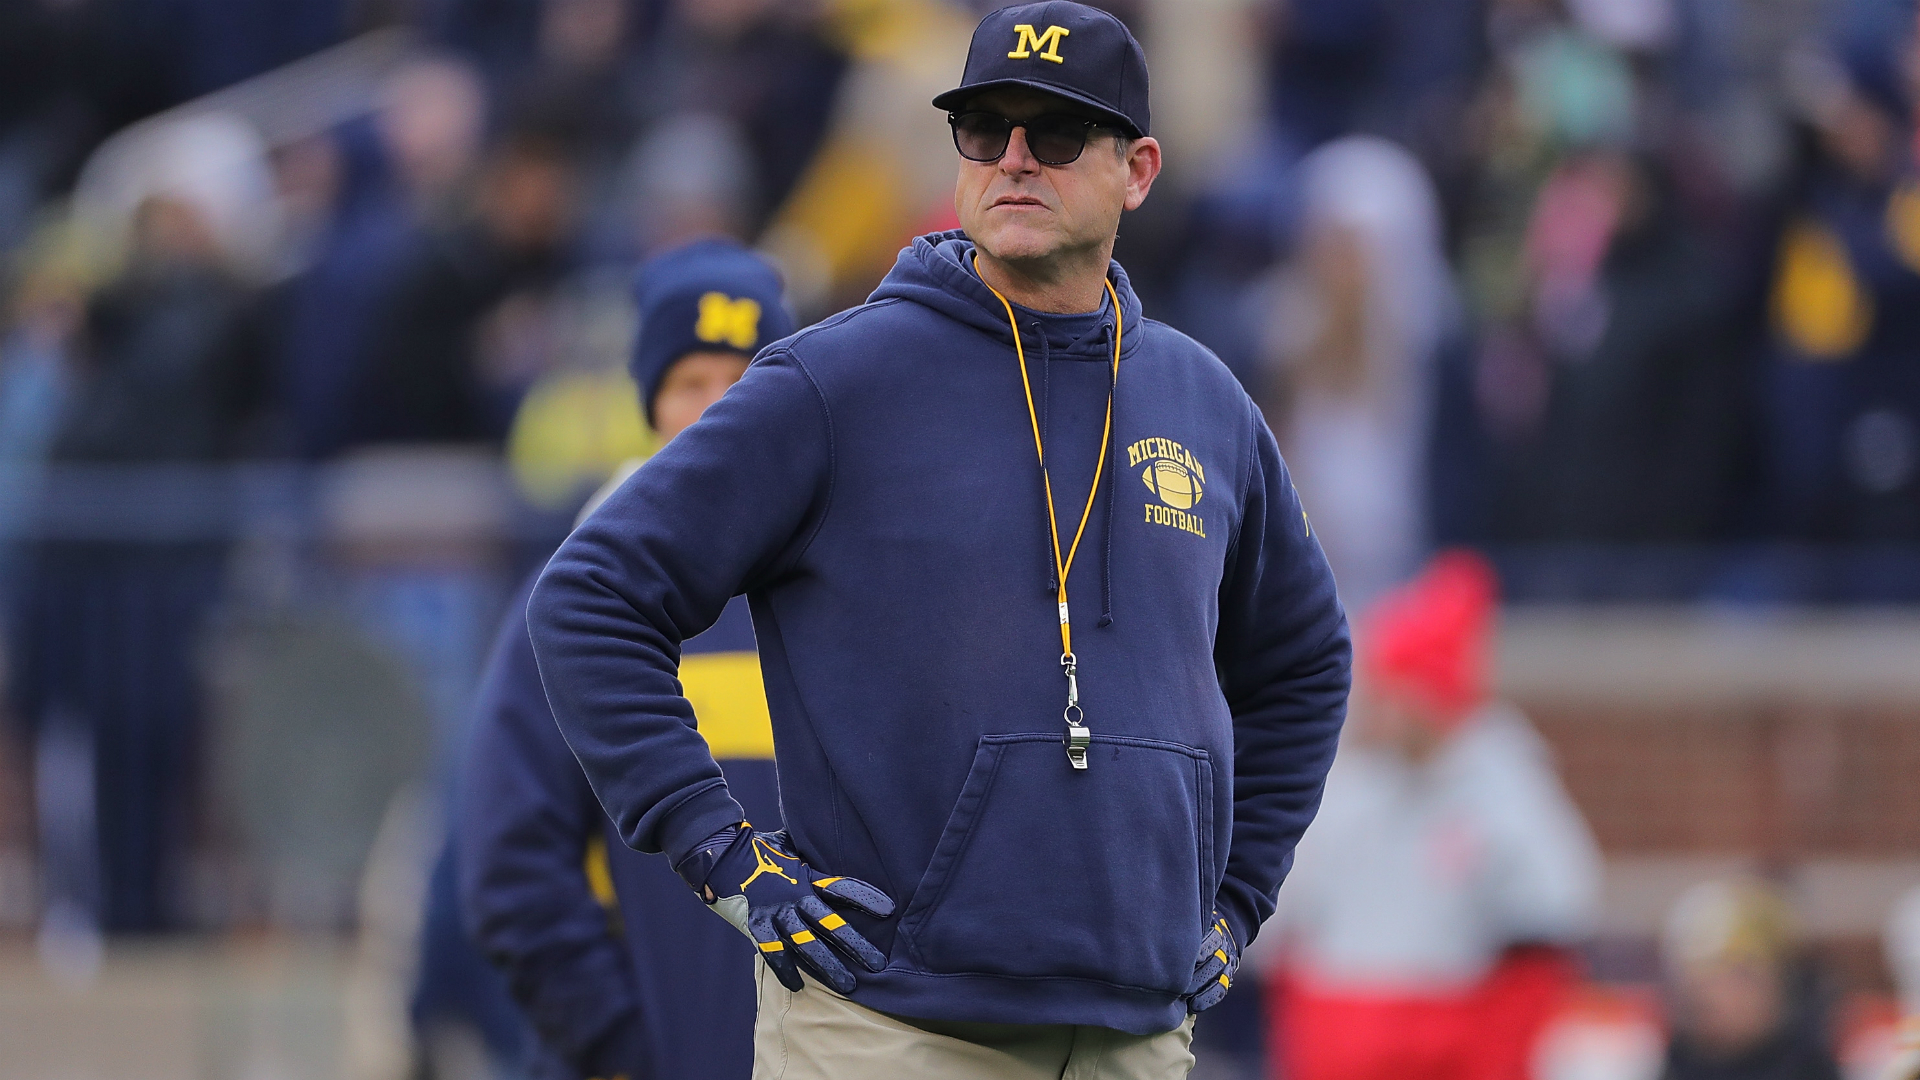 Michigan coach Jim Harbaugh marches in Ann Arbor protest 1